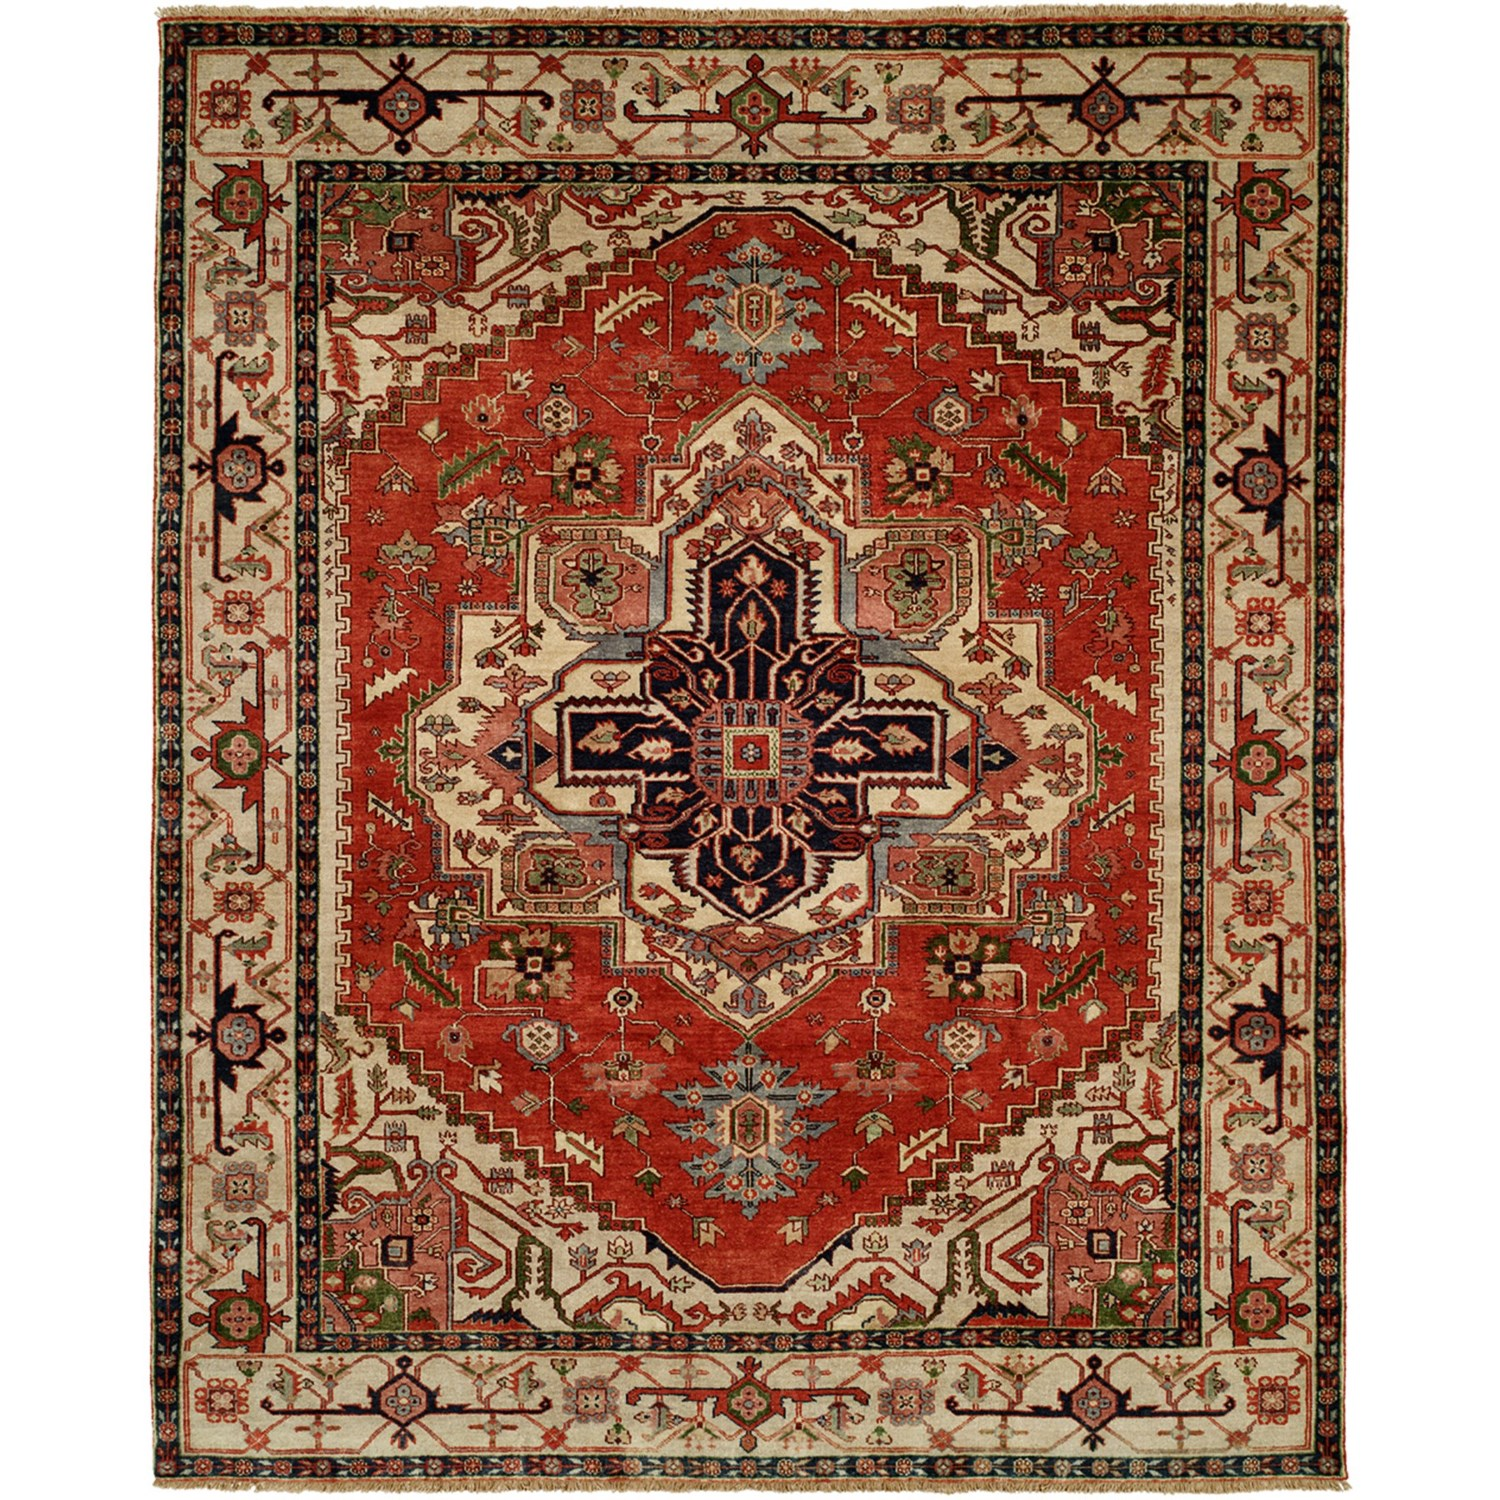 Hand Knotted Persian Style Wool Pile Area Rug: HRI Serapi Hand-Knotted Wool Pile Area Rug